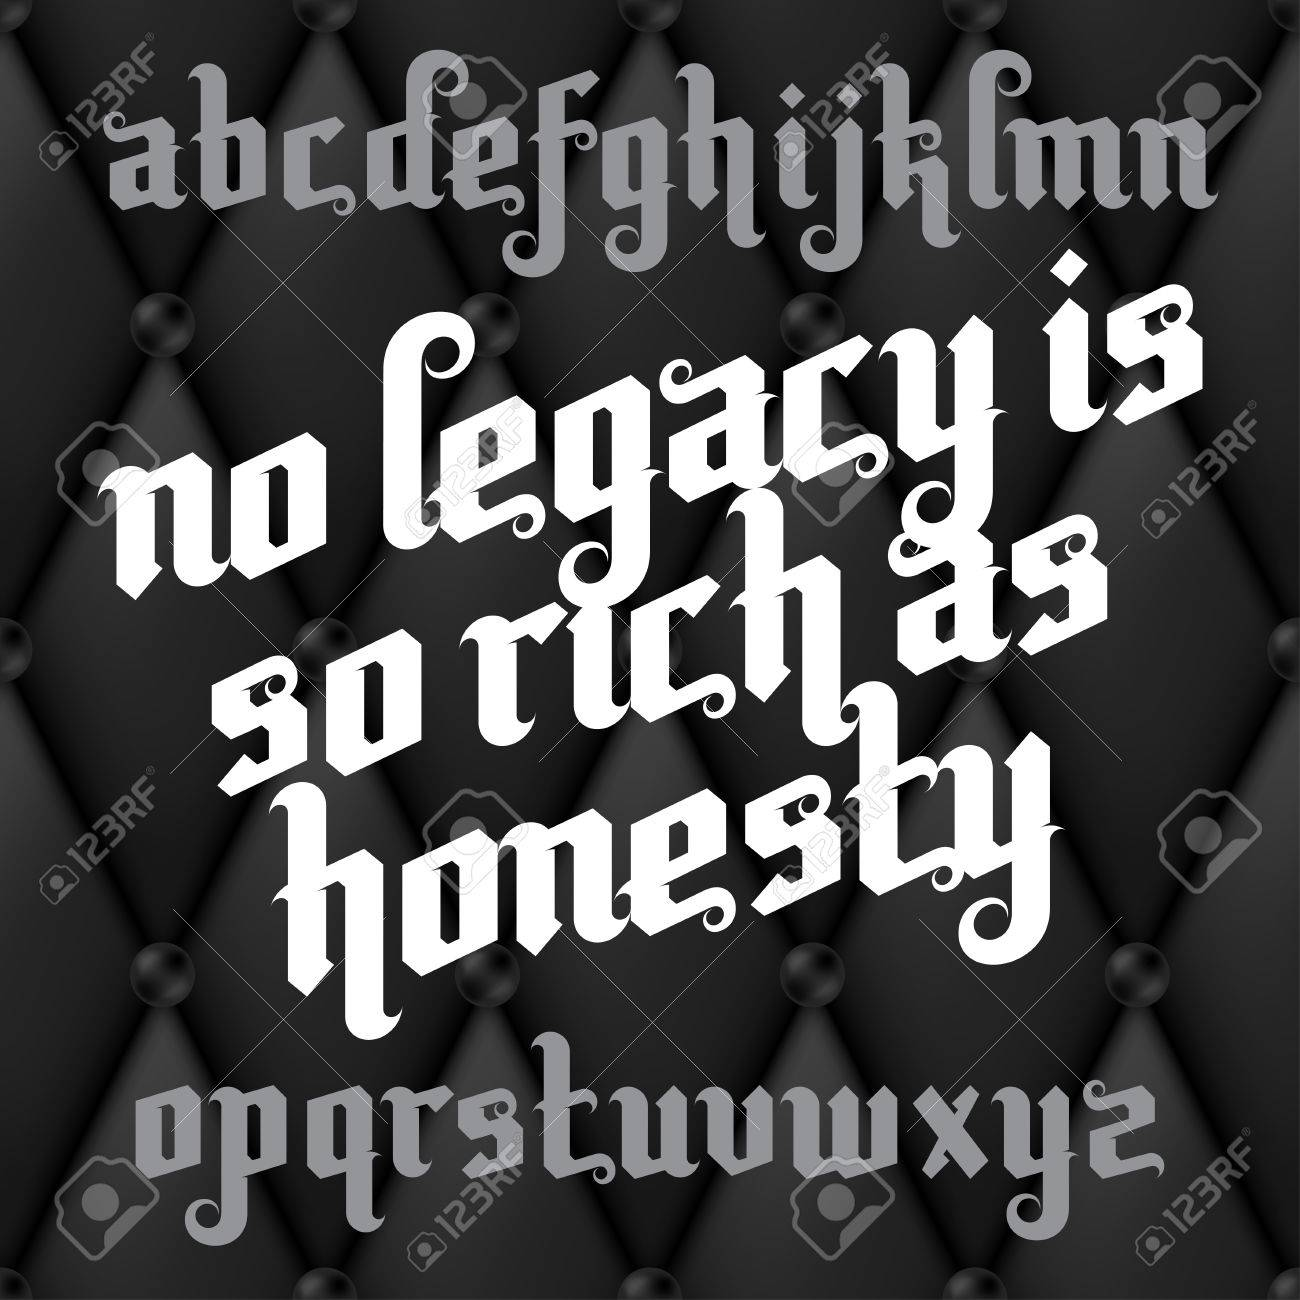 no legacy is as rich as honesty